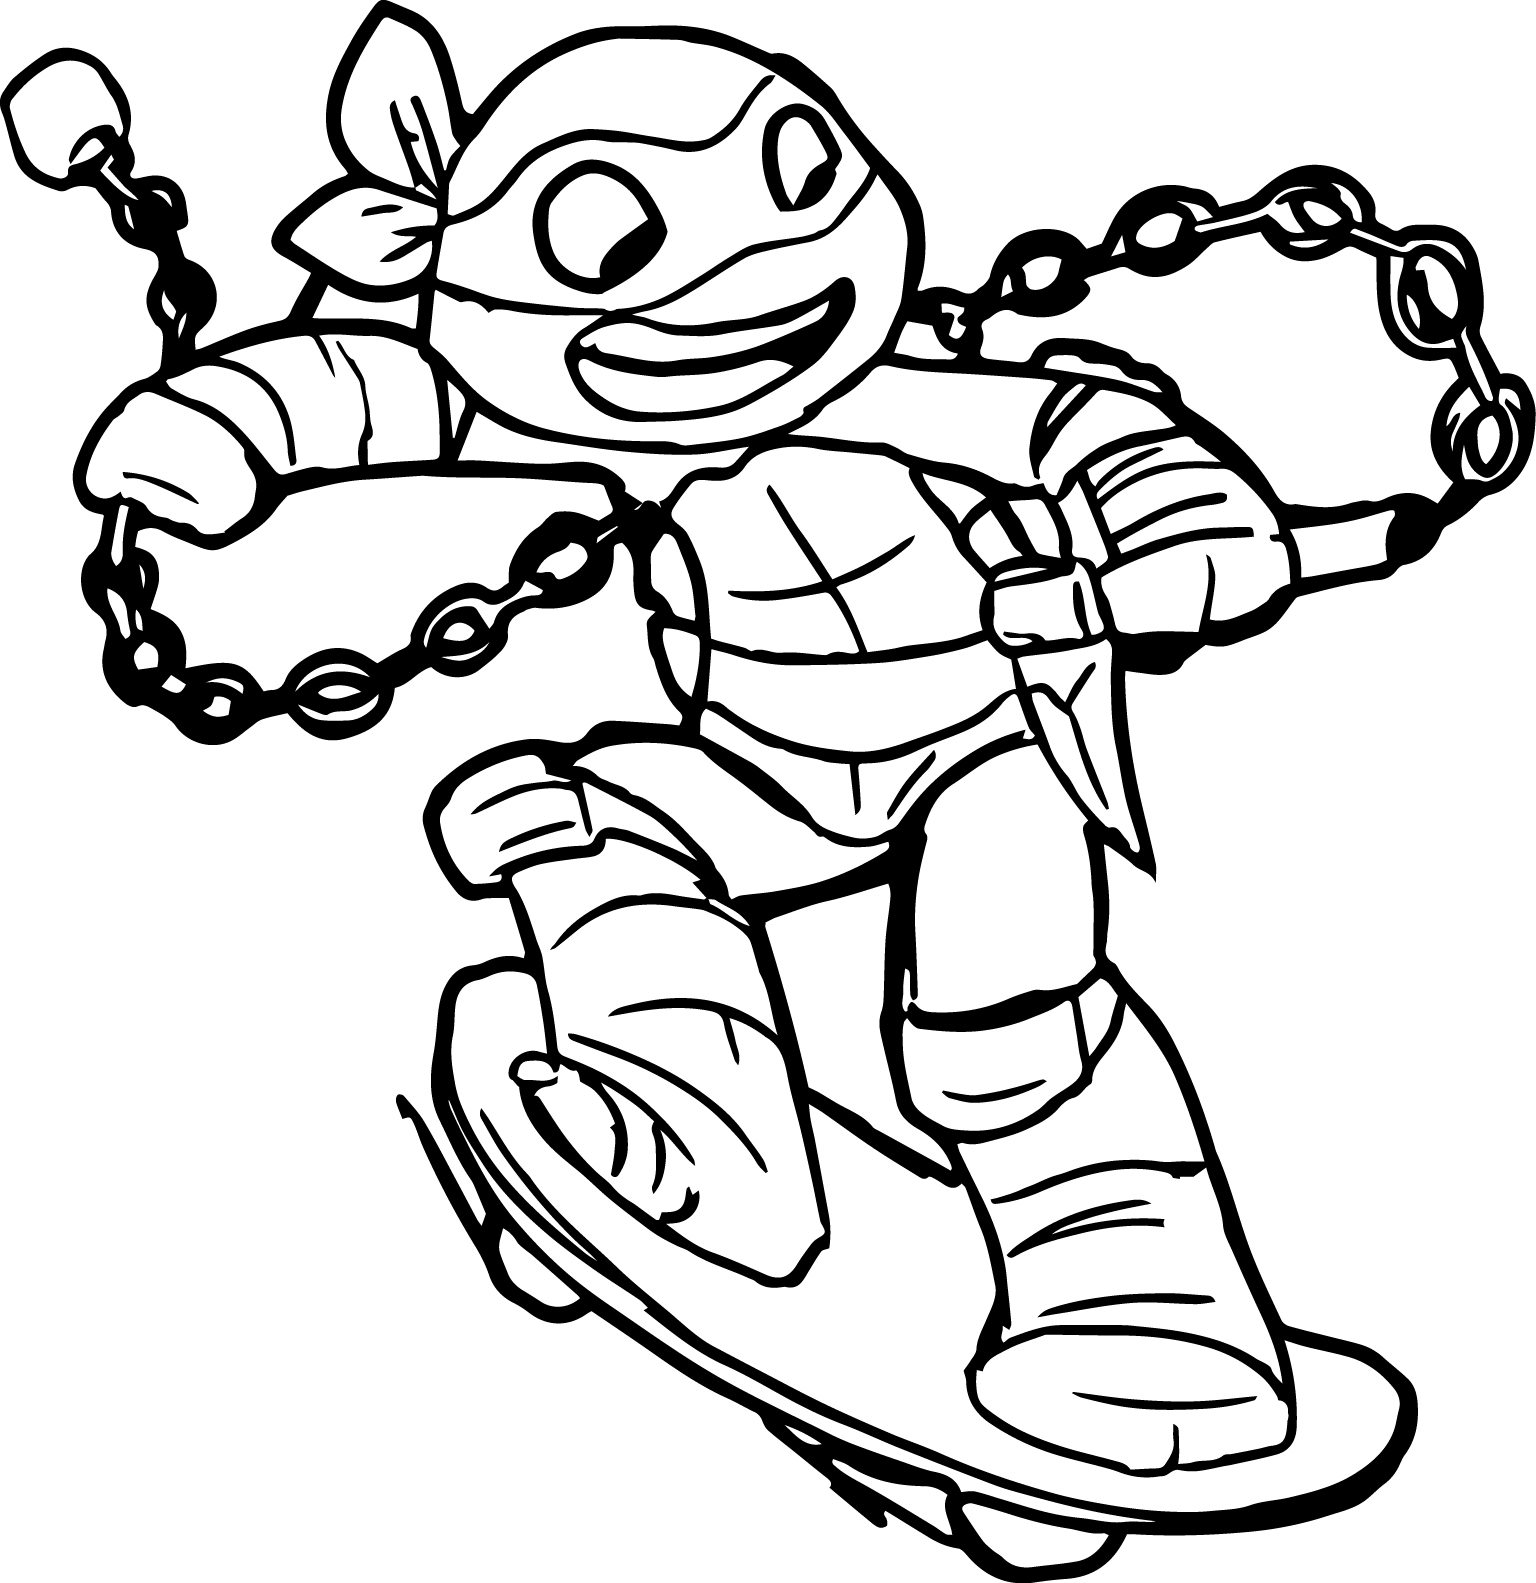 Ninja Turtles Movie Coloring Pages Collection 3g - Free For kids